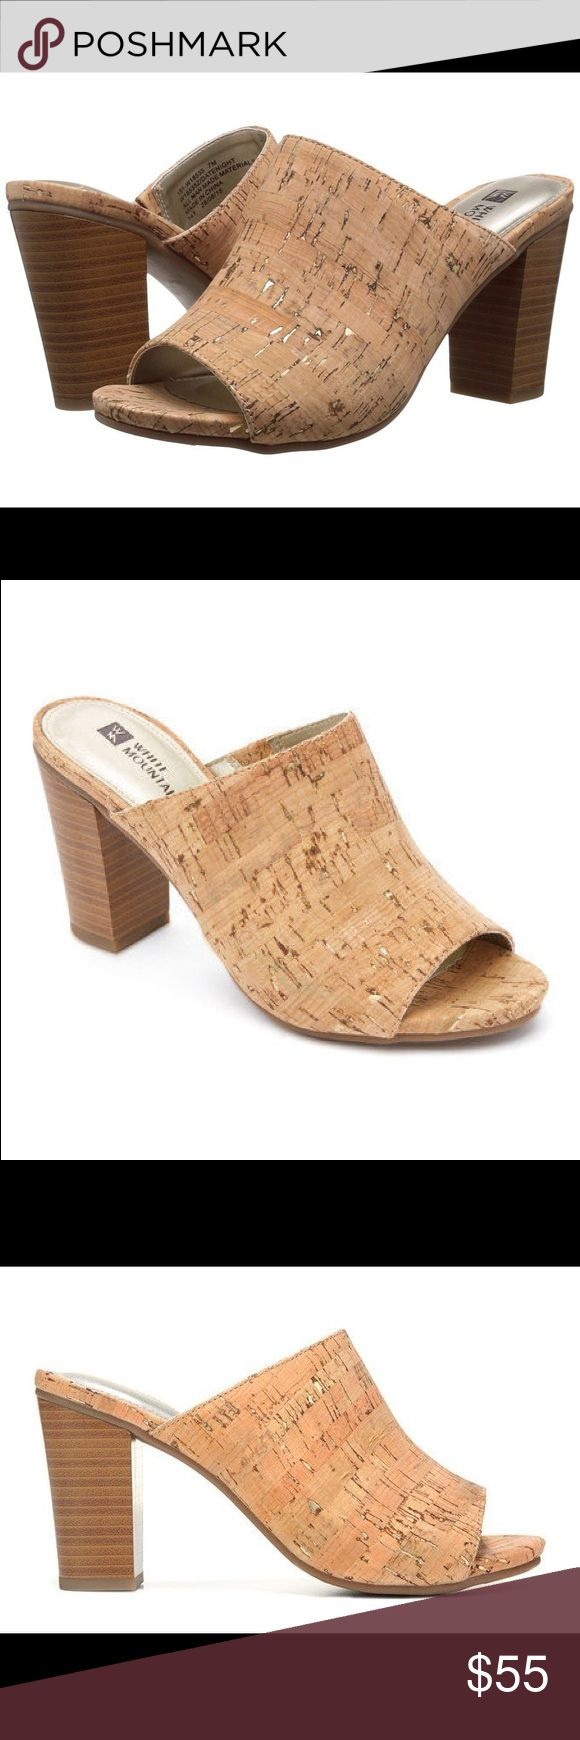 White Mountain shoes Style name: DateNight in natural/gold/cork Shoes Heels